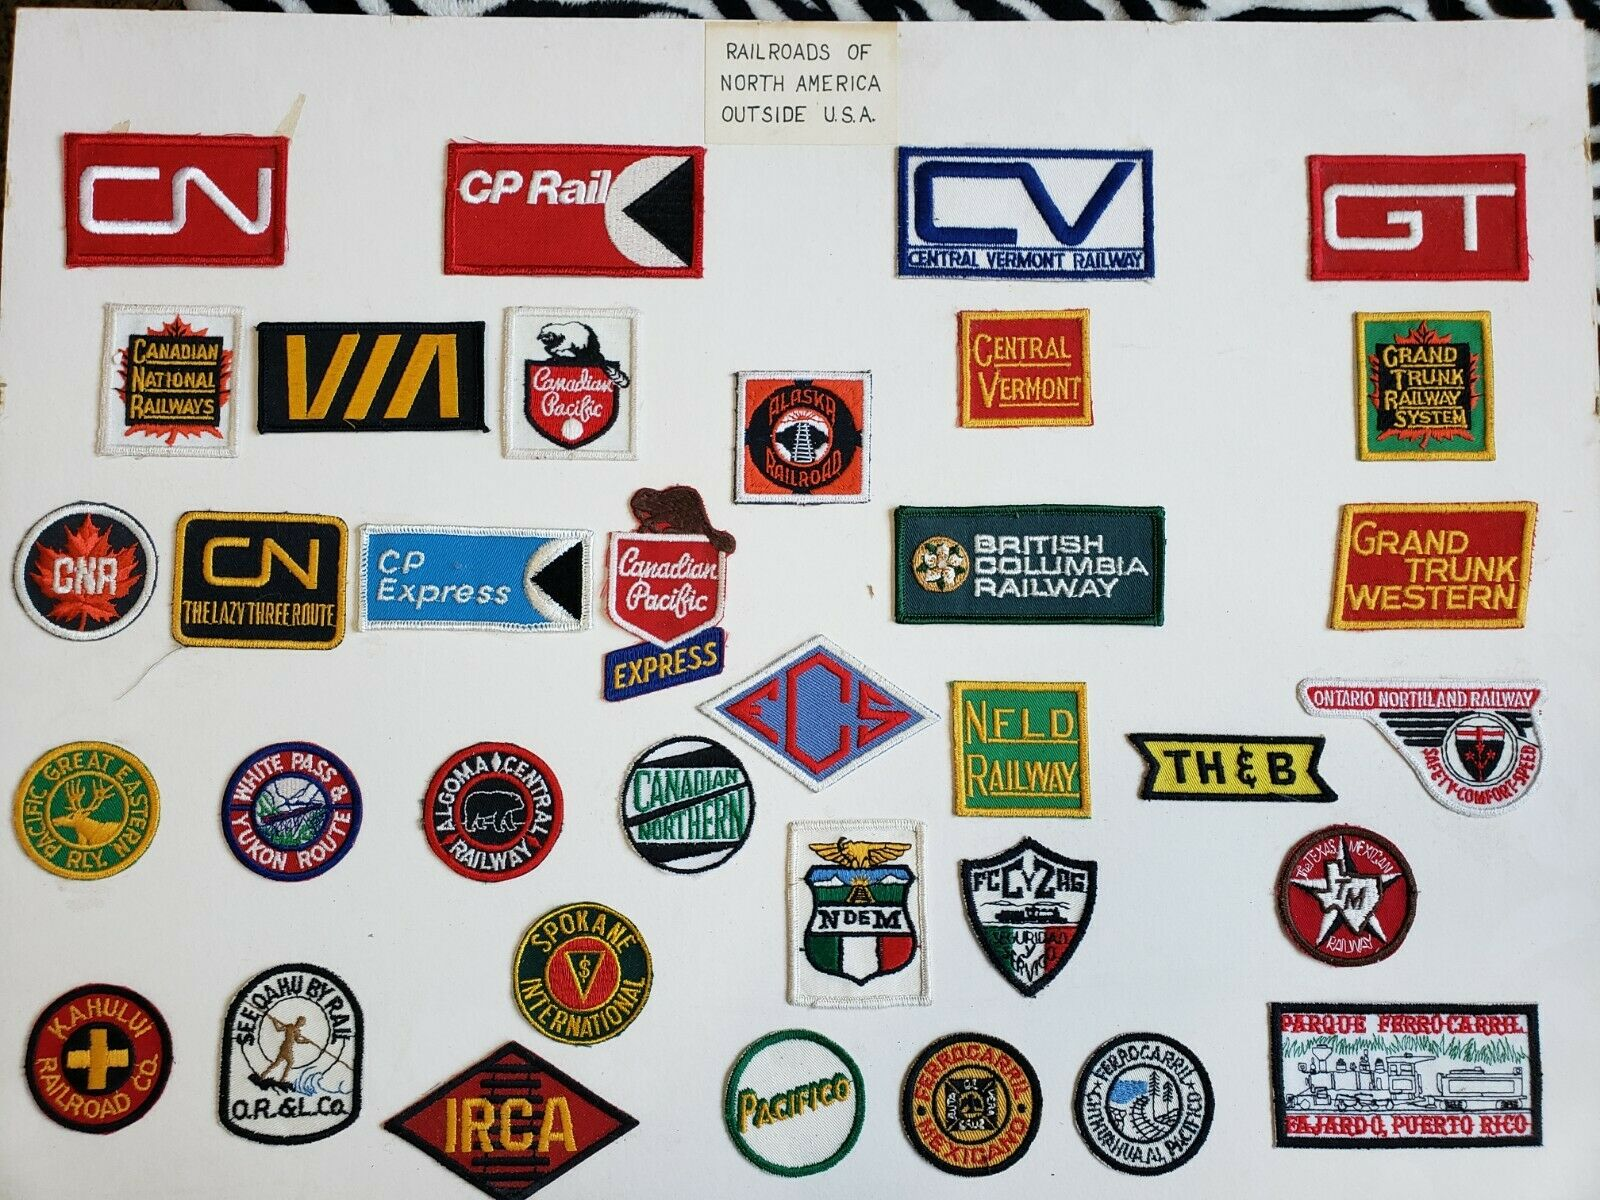 Railroads of North America Outside USA Patches (35 patches)